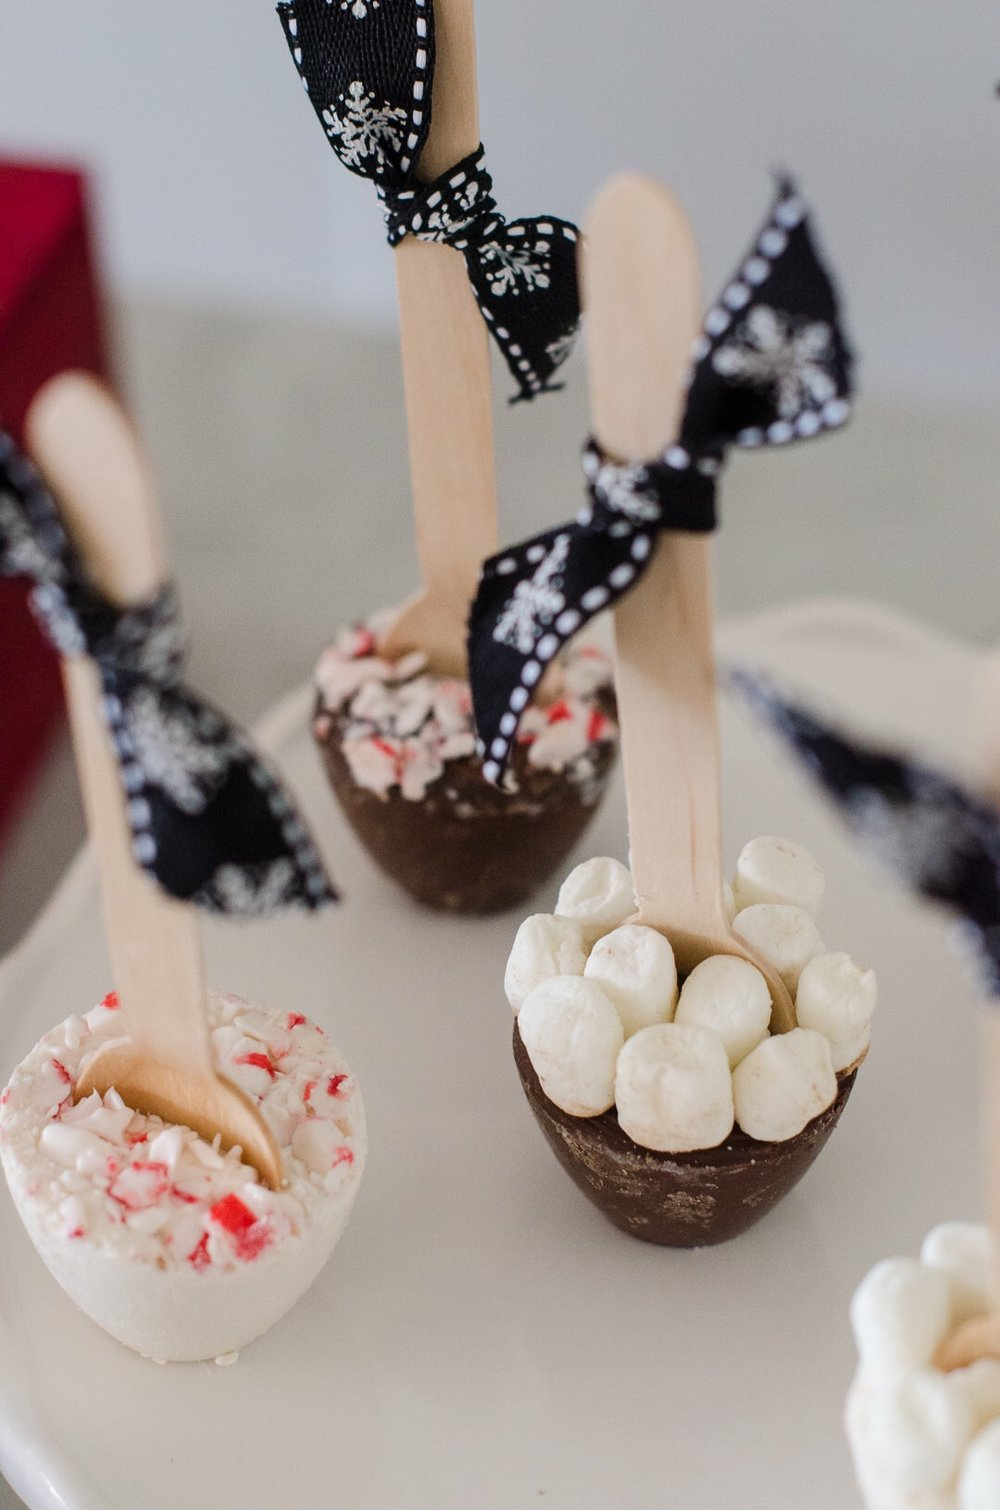 Hot cocoa stirrers for holiday parties will be such a treat for guests. See more holiday party inspiration from Austin based party stylist Mint Event Design at www.minteventdesign.com #holidayparty #holidays #partyideas #christmasparty #holidaypartyideas #hotcocoabar #hotcocoa